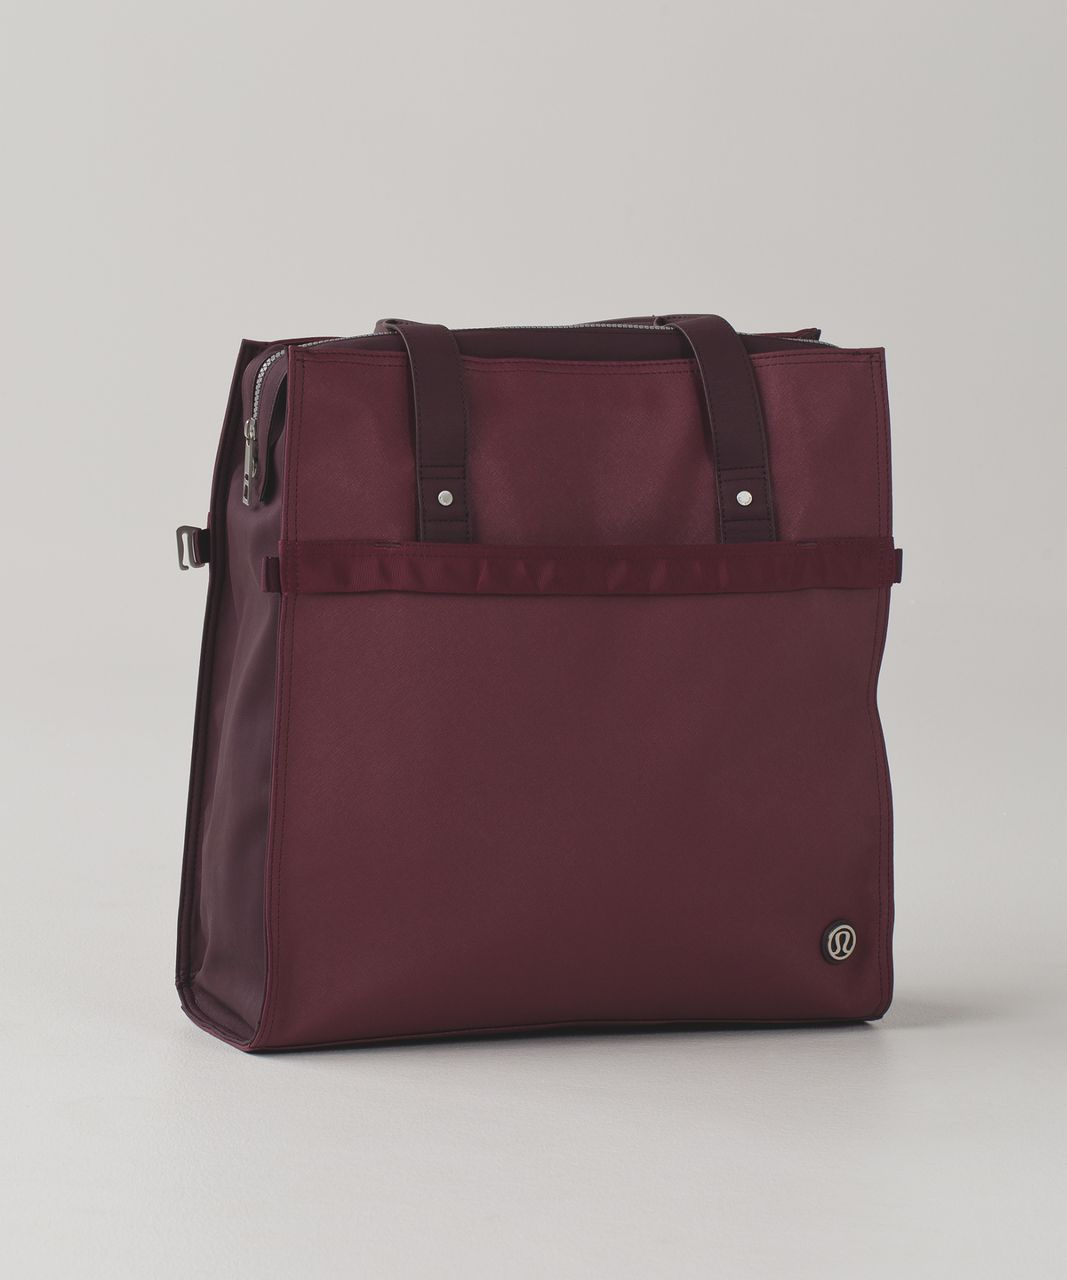 Lululemon Follow Your Bliss Bag Wine Berry